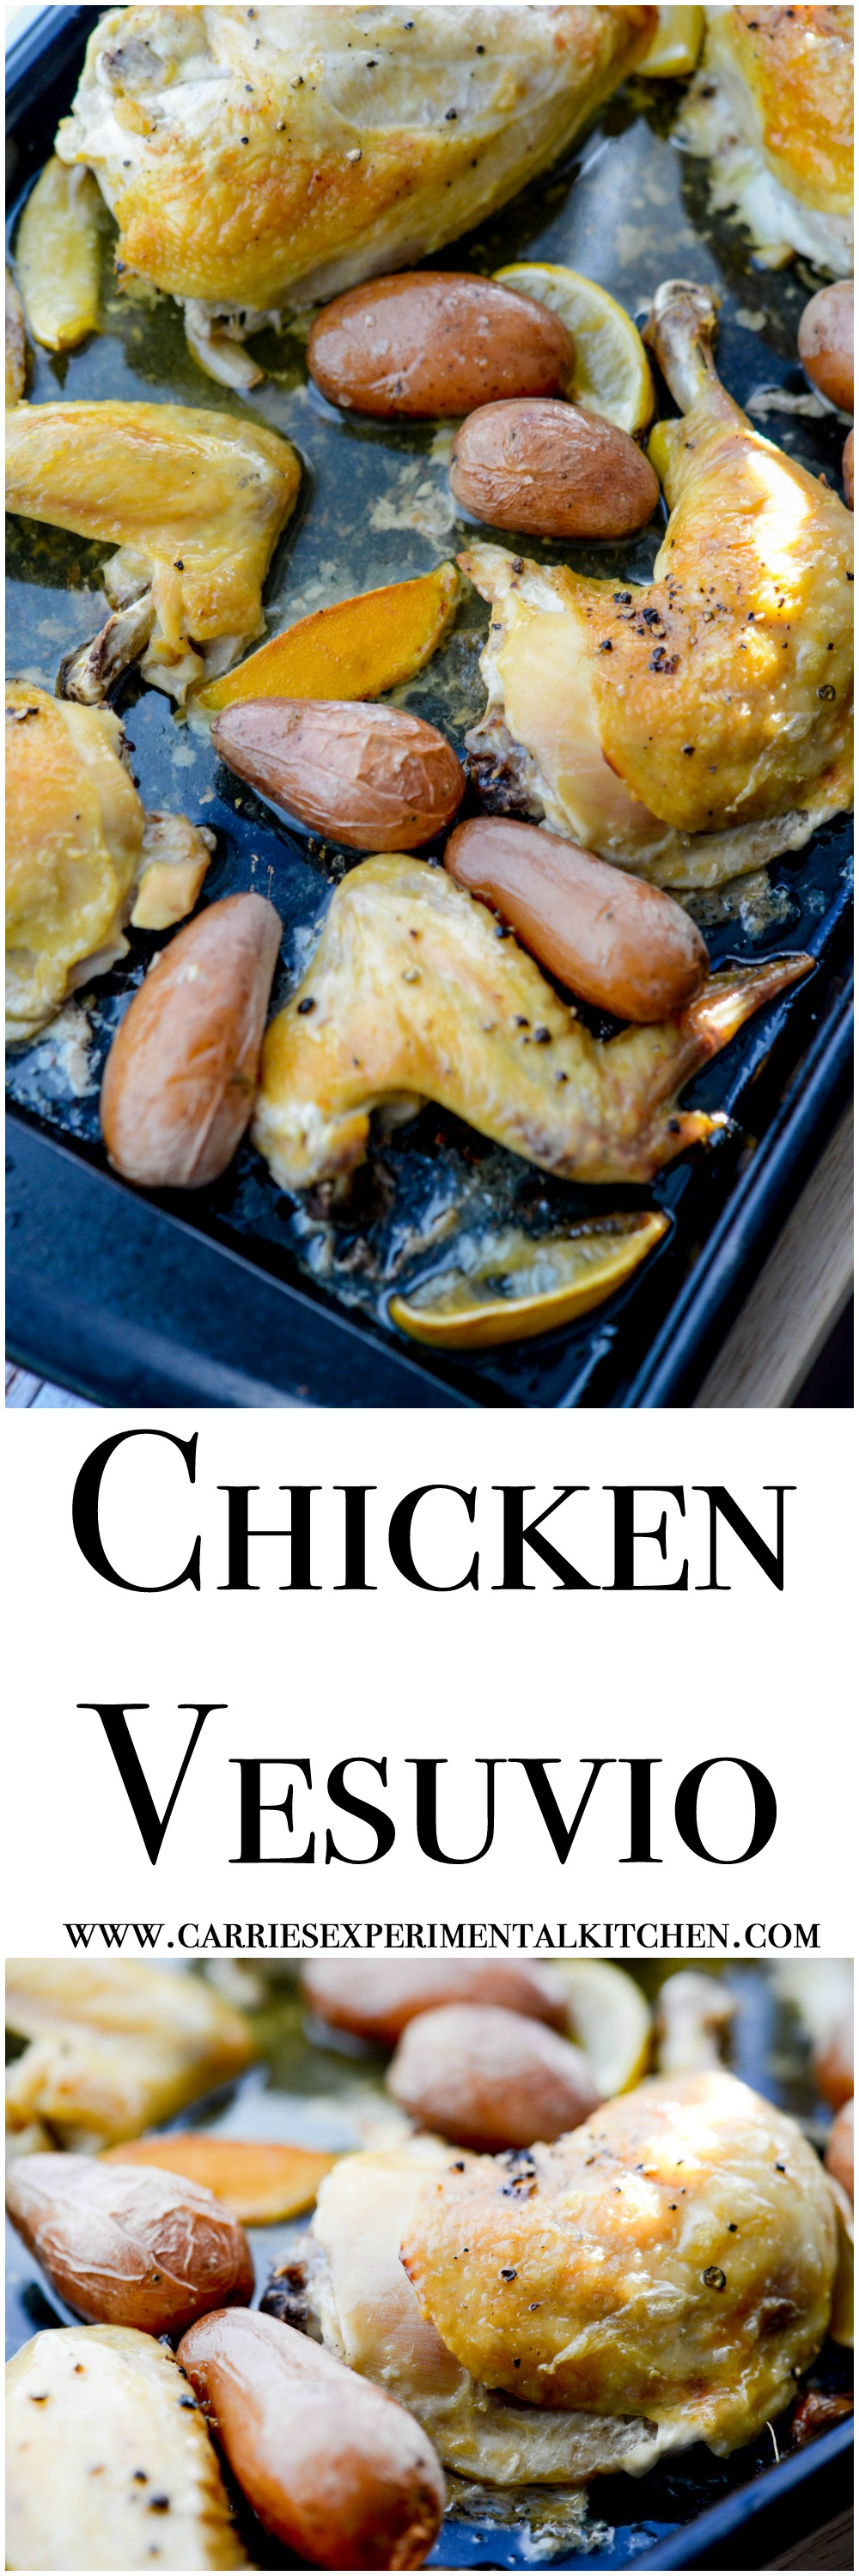 Chicken Vesuvio - This easy sheet pan dinner is made with chicken, garlic, lemon, and potatoes. The recipe was created by Ann at Sumptuous Spoonfuls as part of a guest post on basilmomma.com